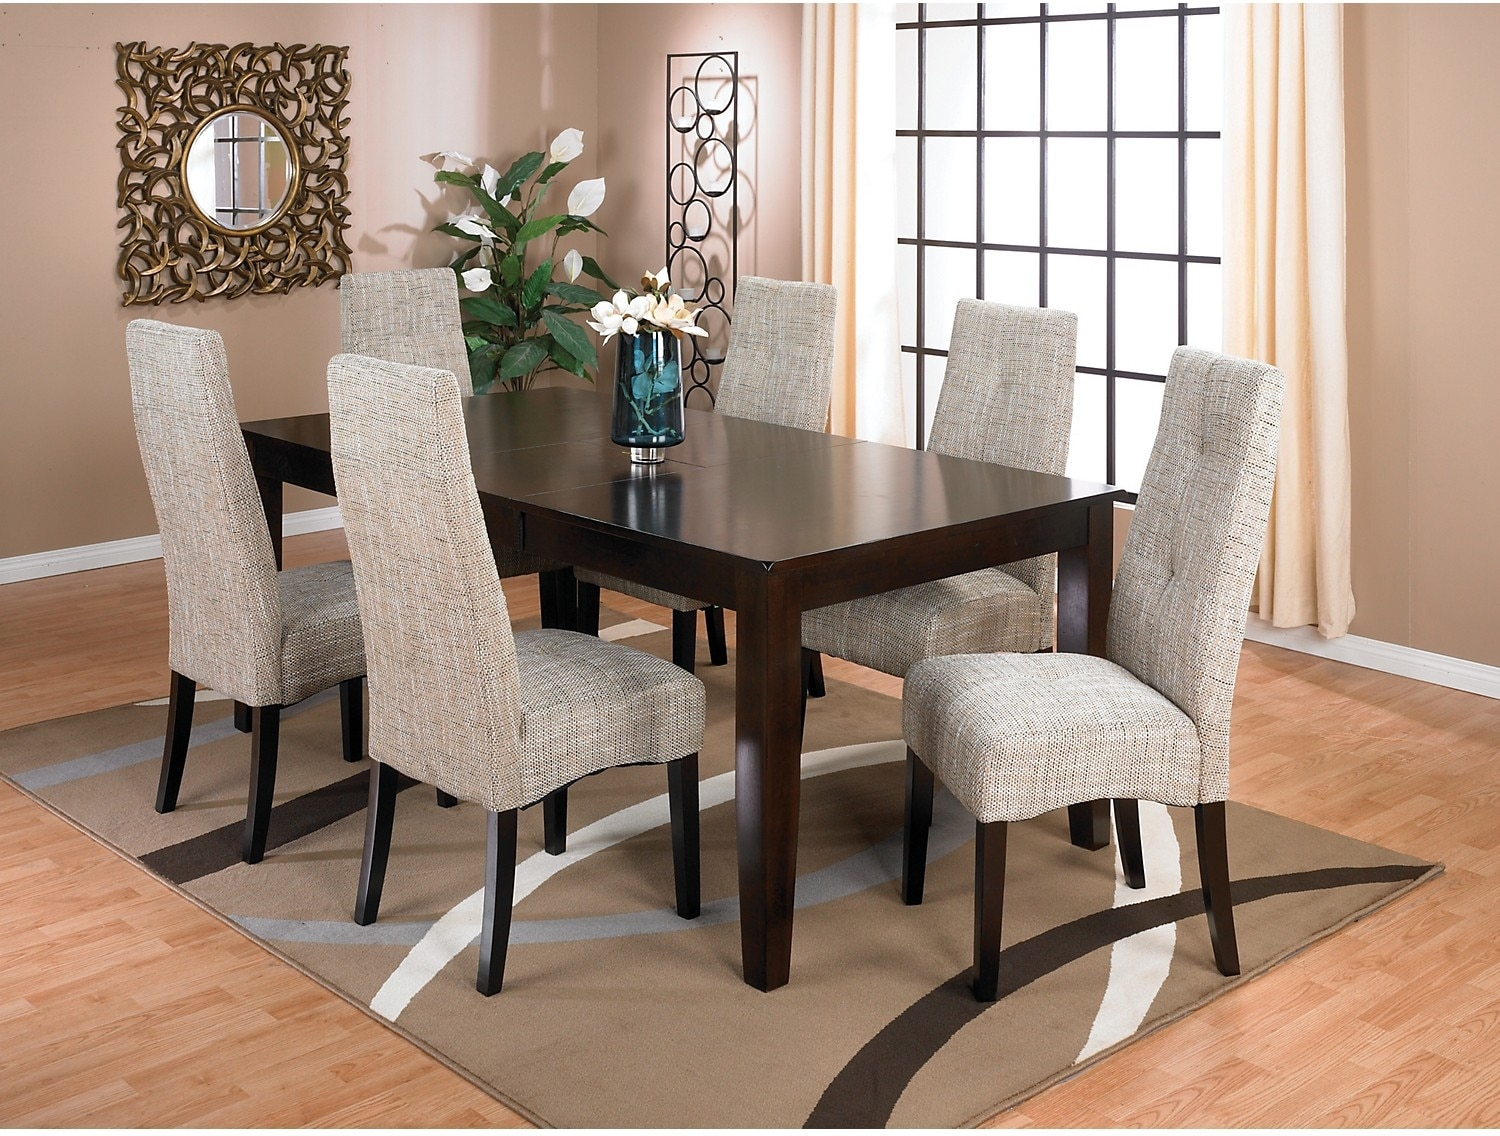 Dining Room Furniture - Dakota 7 Piece Dining Package w/ Linen Chairs